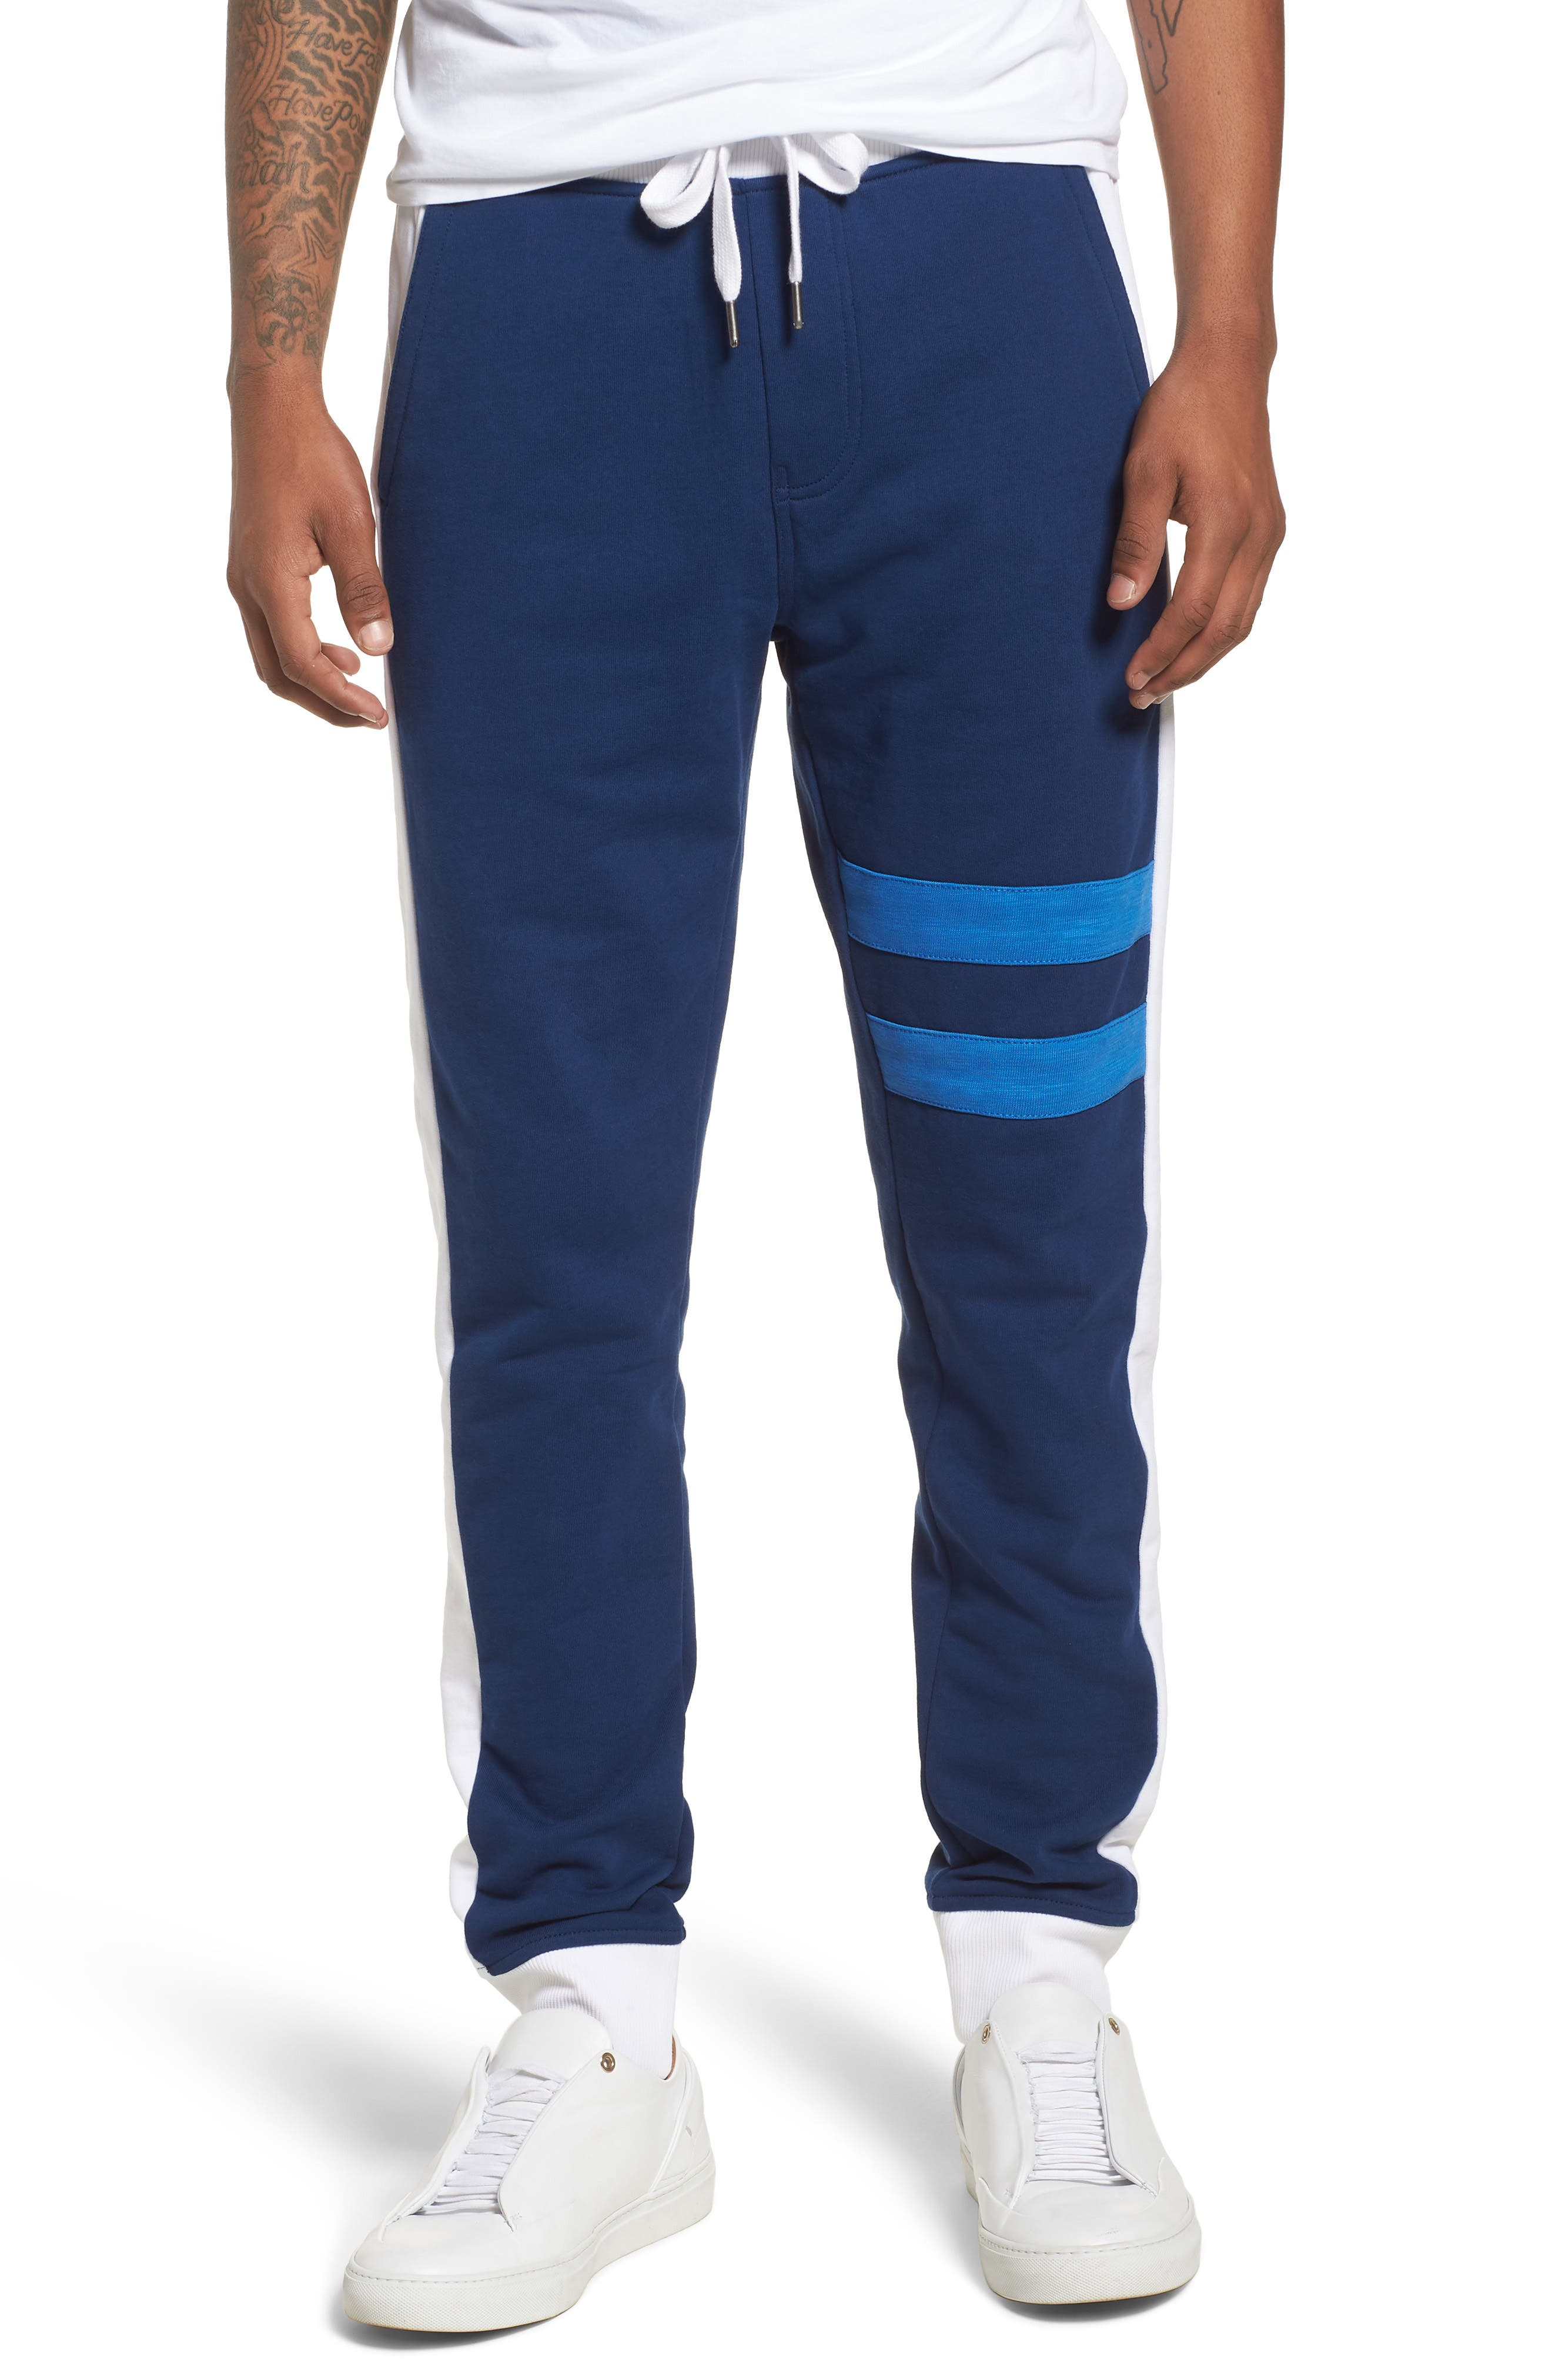 Athletic Collage Sweatpants,                             Main thumbnail 1, color,                             Night Rider